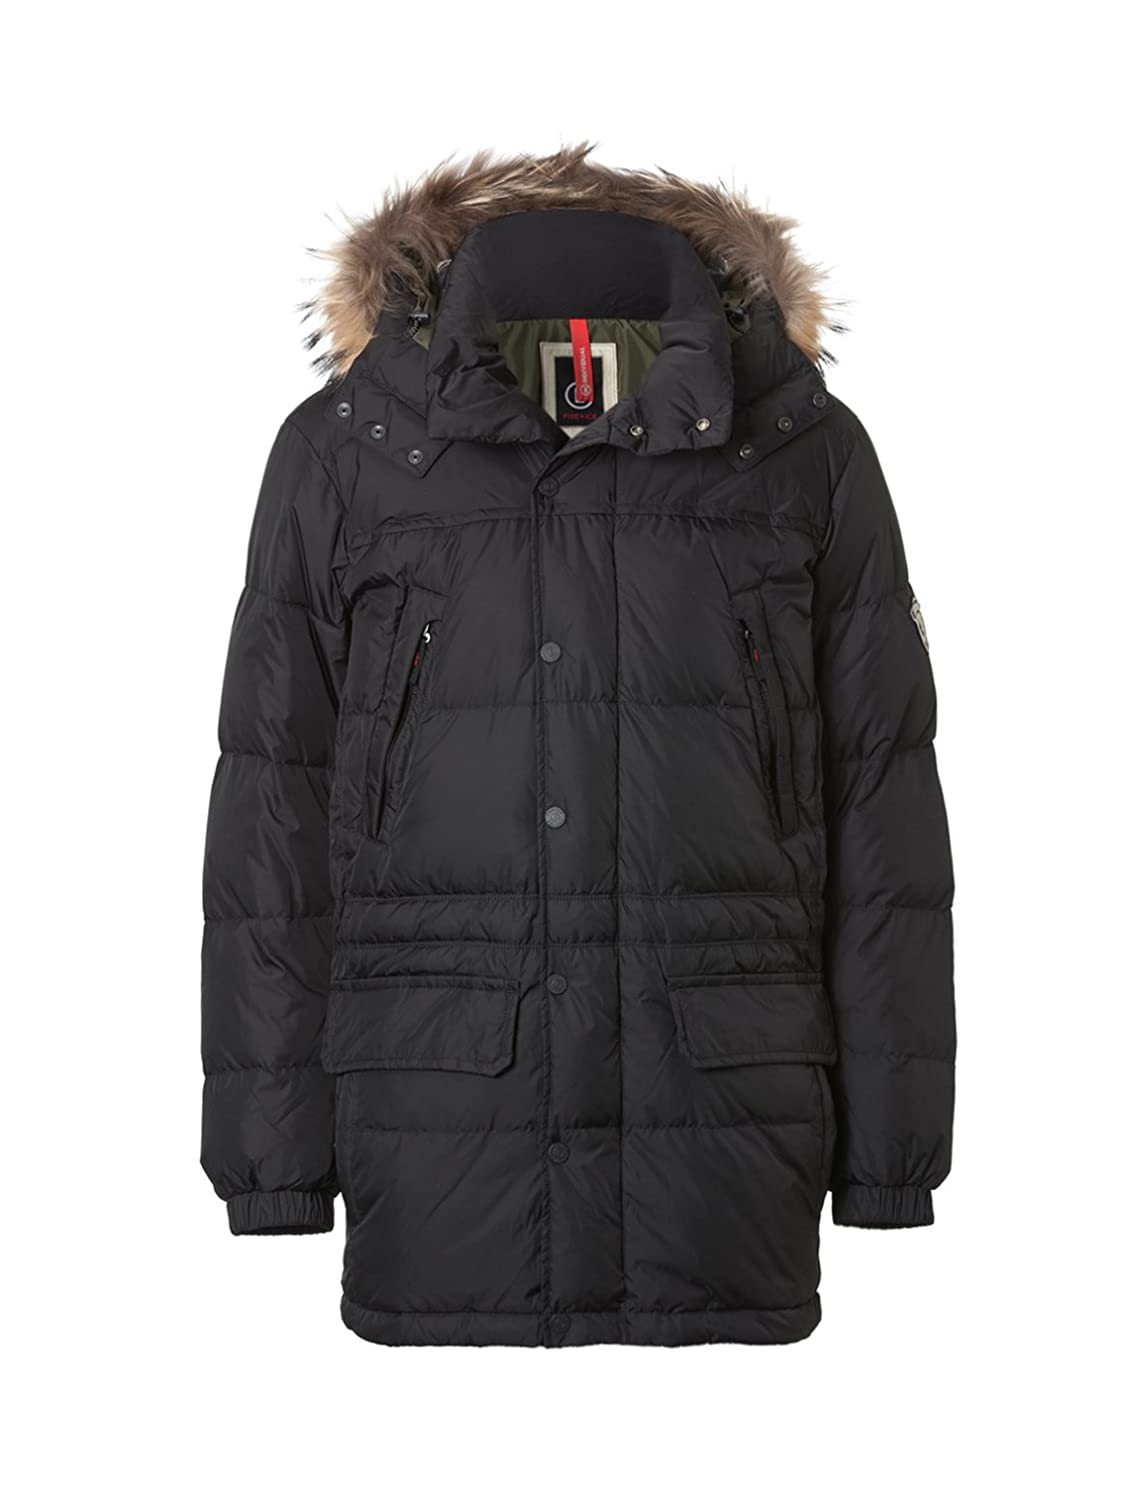 Bogner Fire + Ice Herren Jacke Ethan2-D günstig bestellen